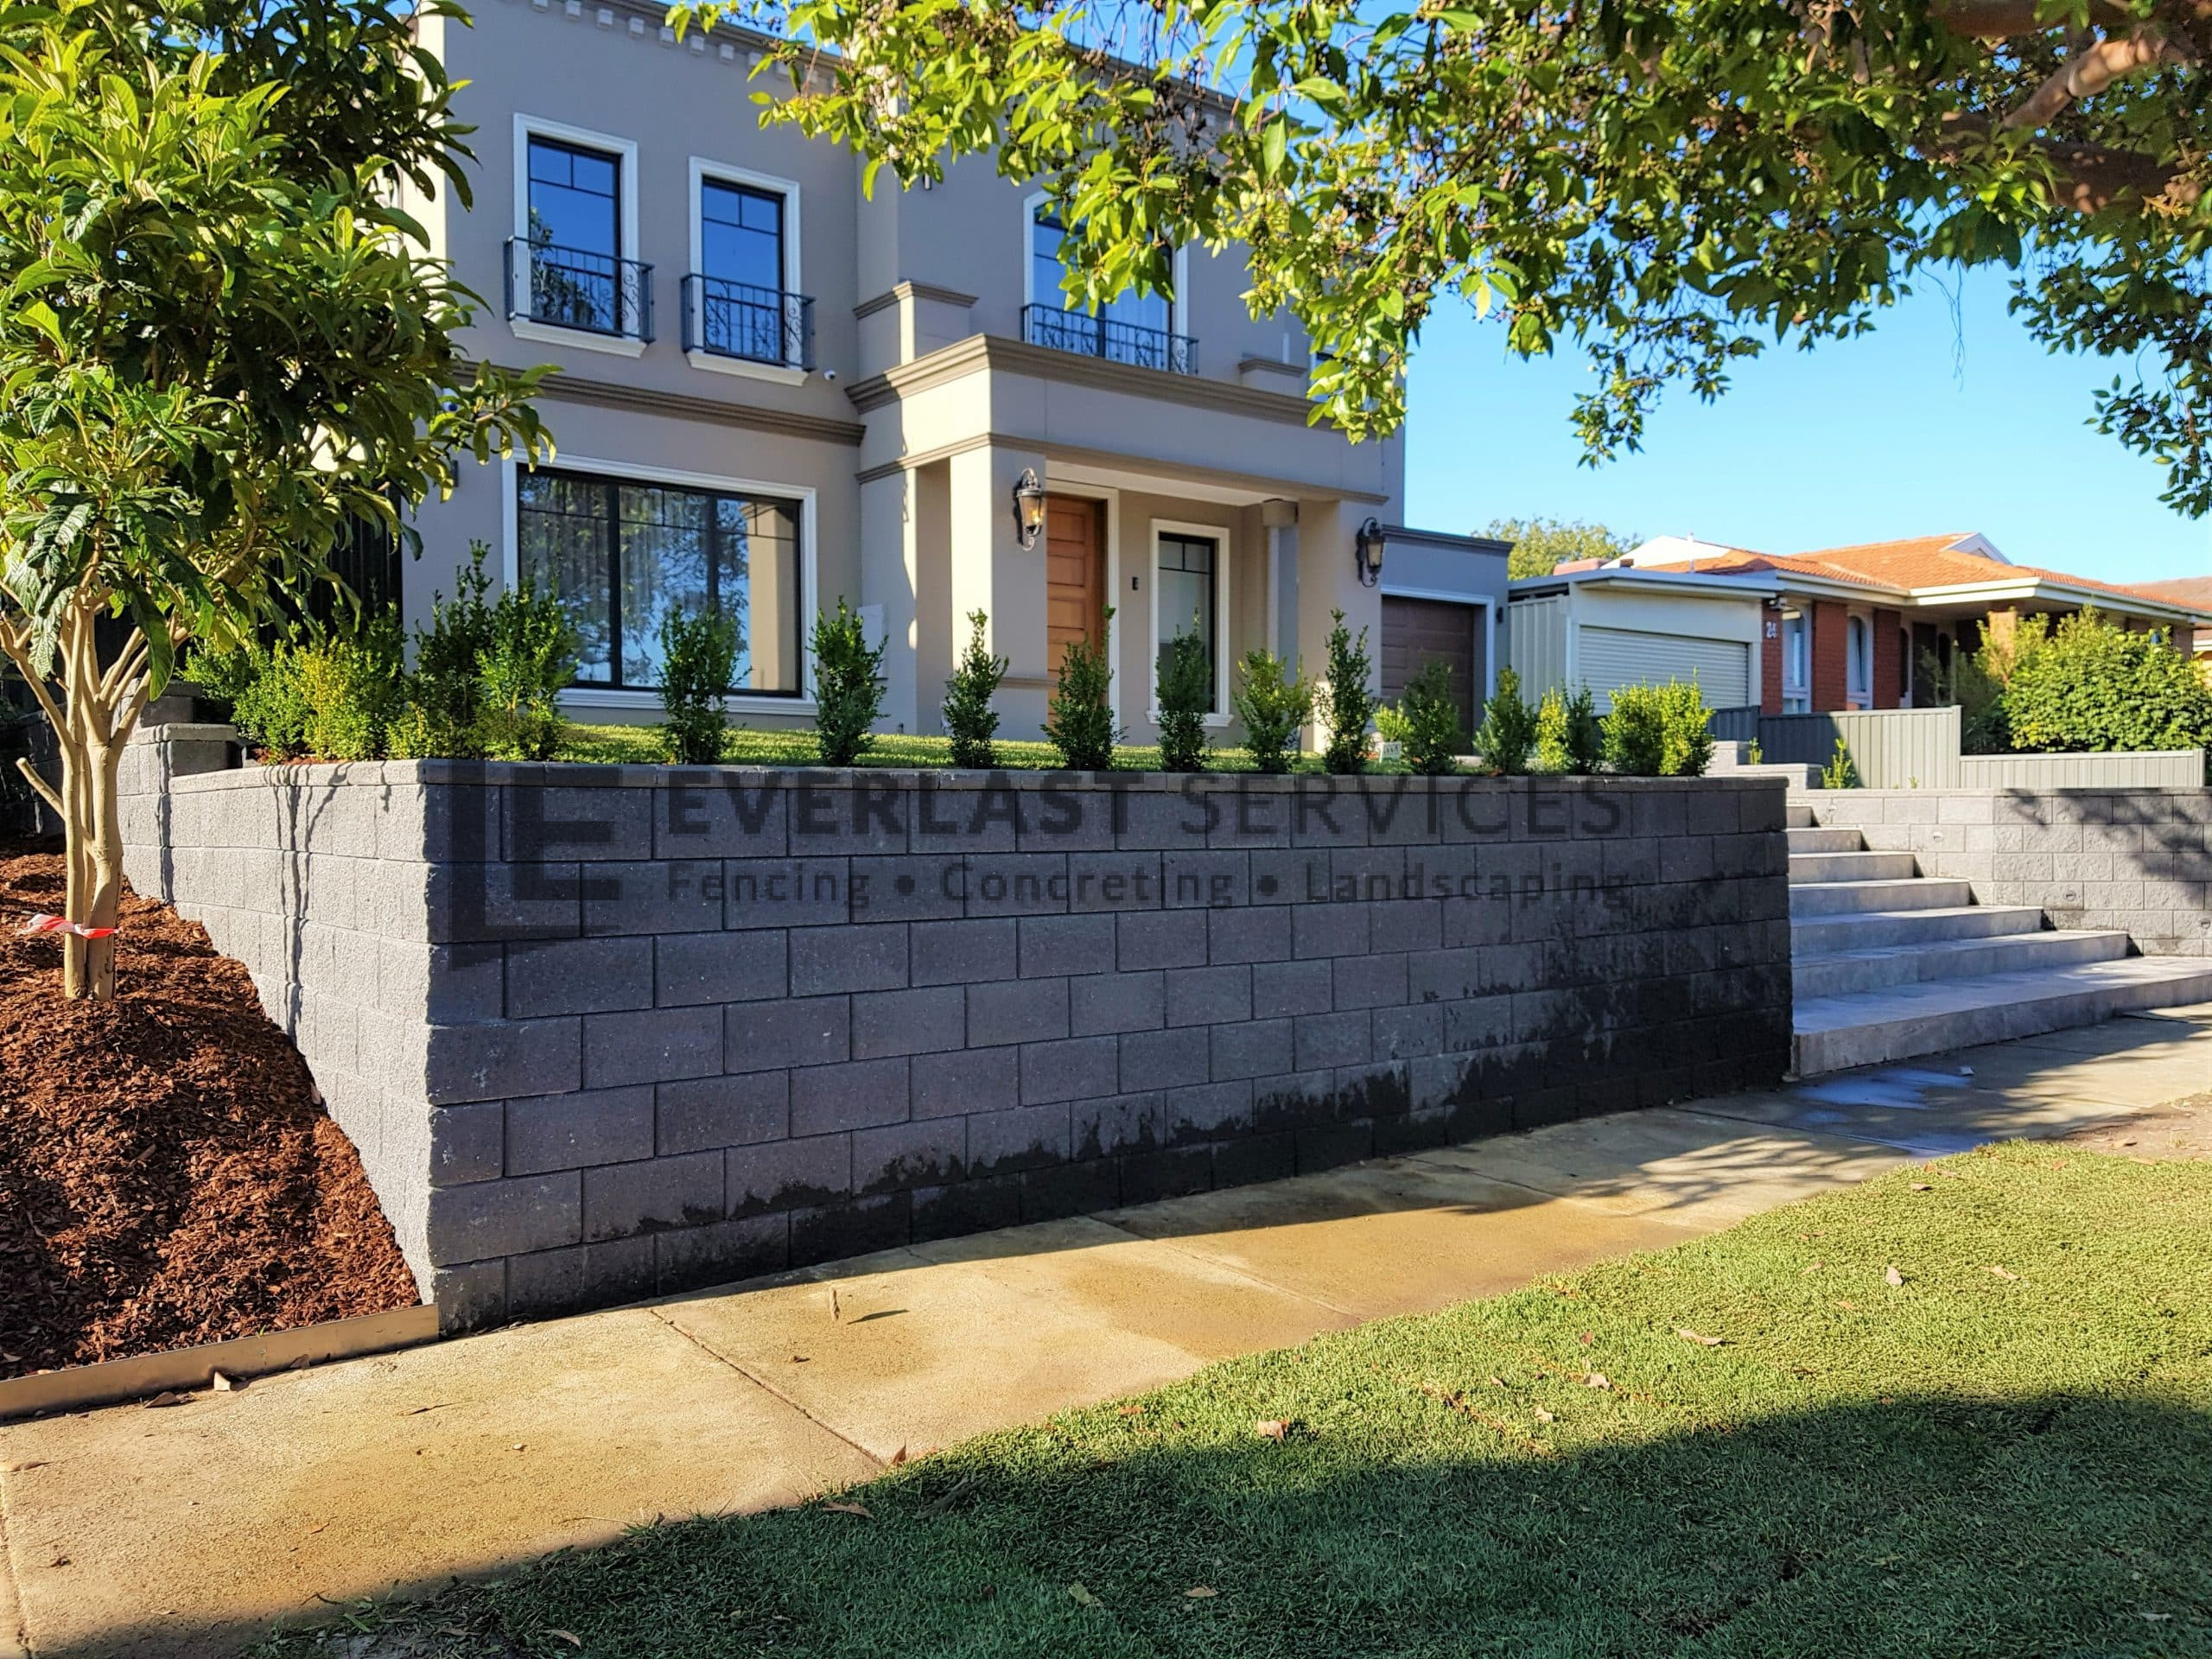 L281 - Landscaping front of house